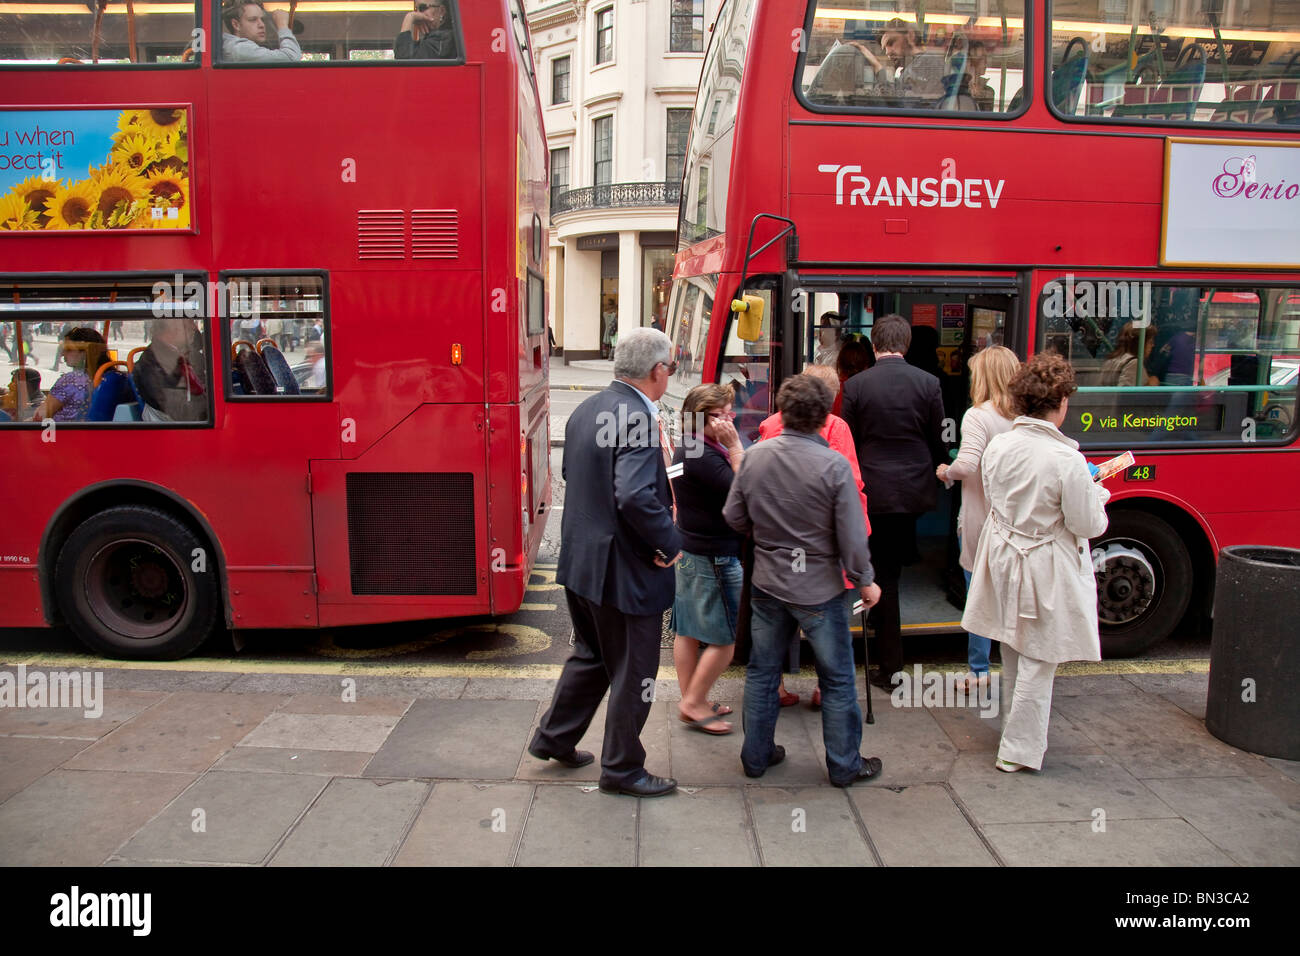 People getting on a typical red doubledecker bus in London - Stock Image